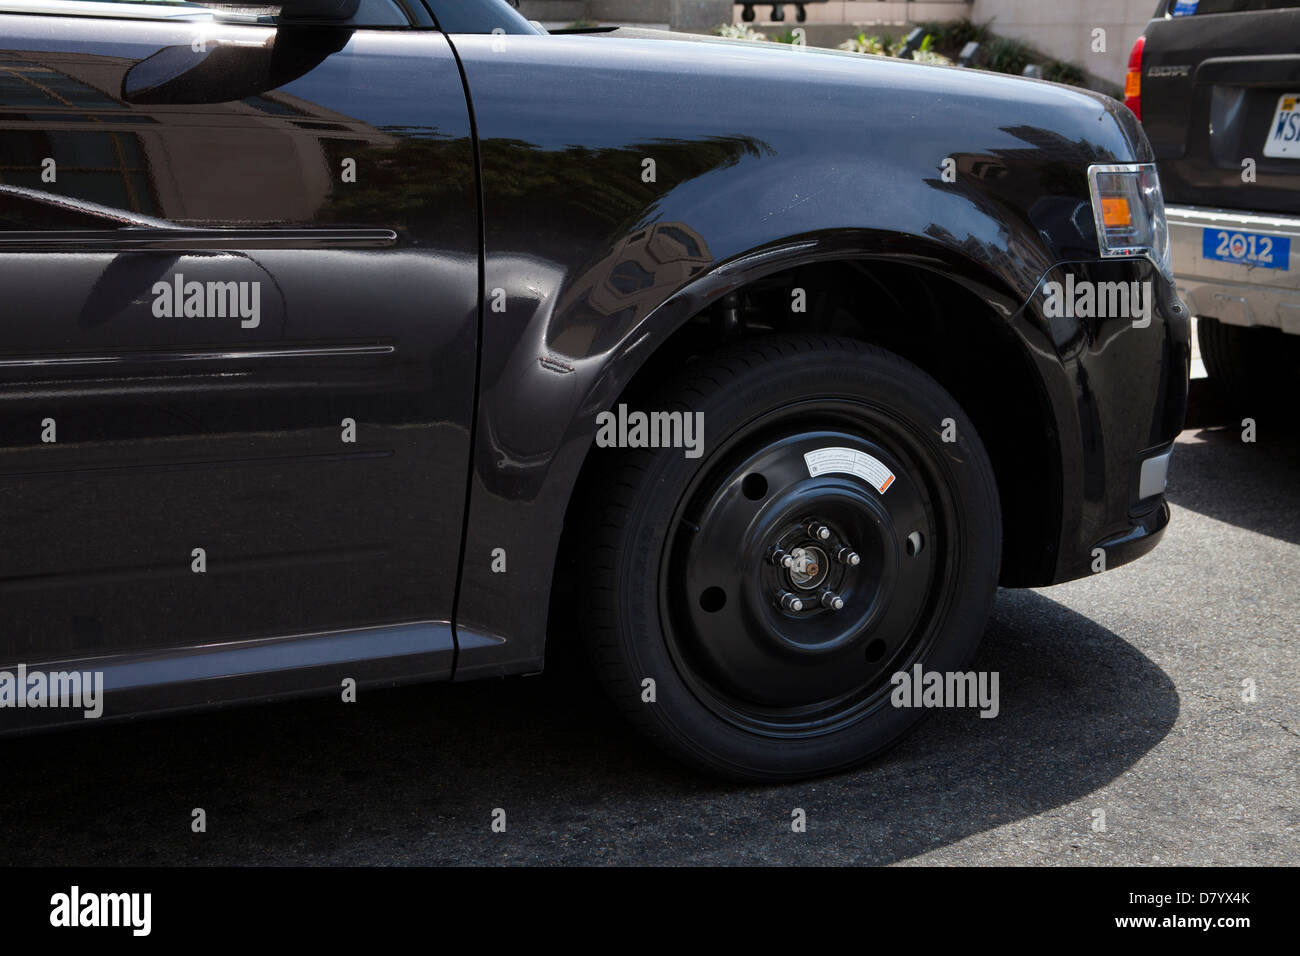 Spare wheel on car - Stock Image